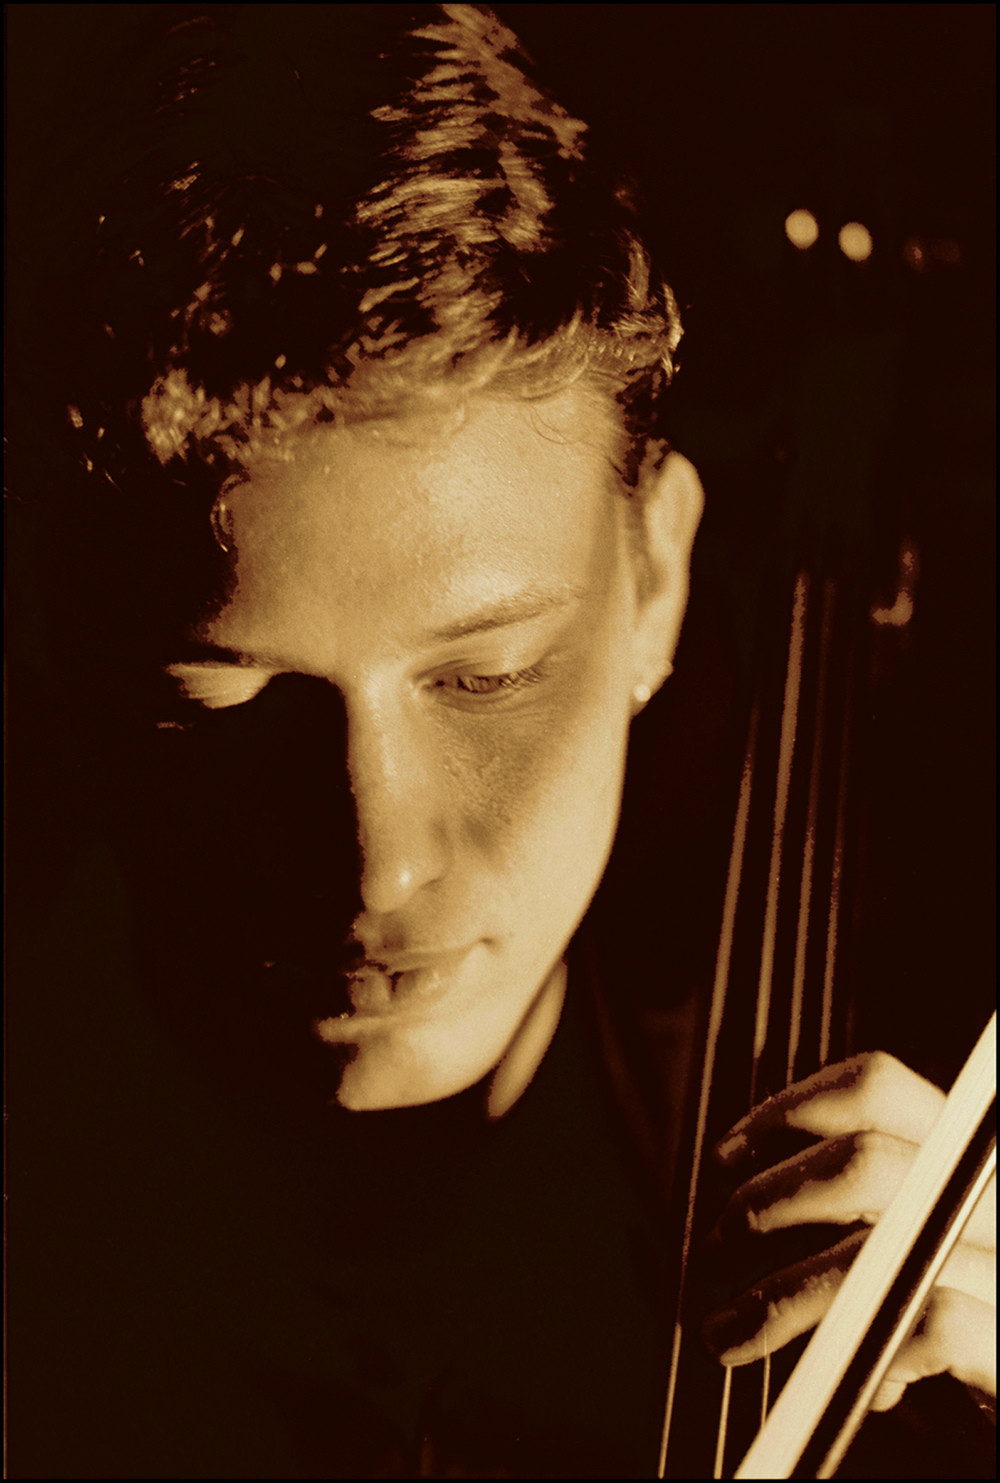 Jeremy cello